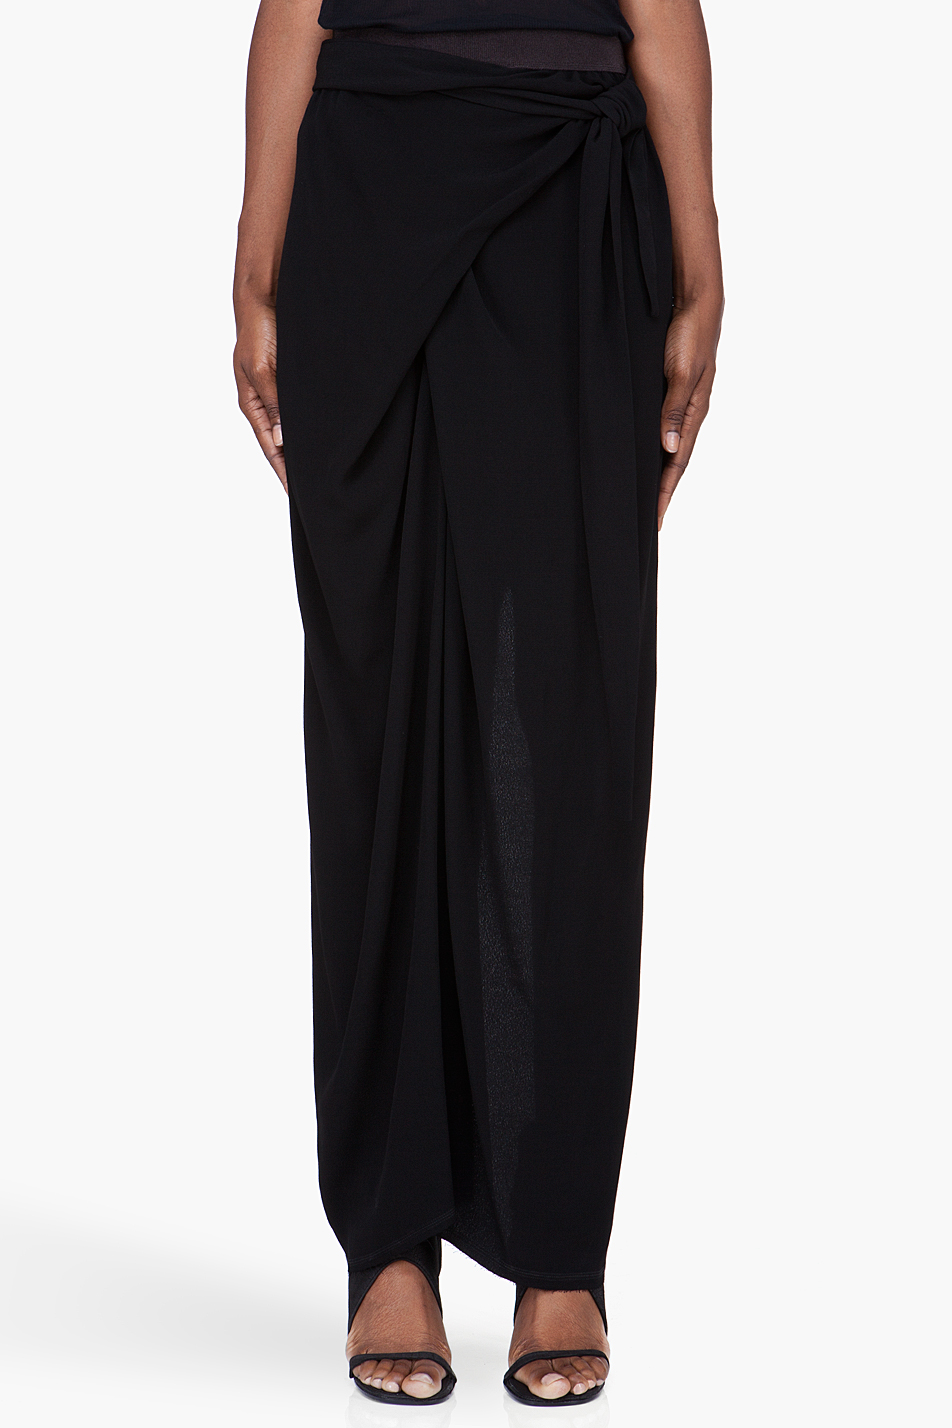 Damir doma Long Black Wrap Skirt in Black | Lyst